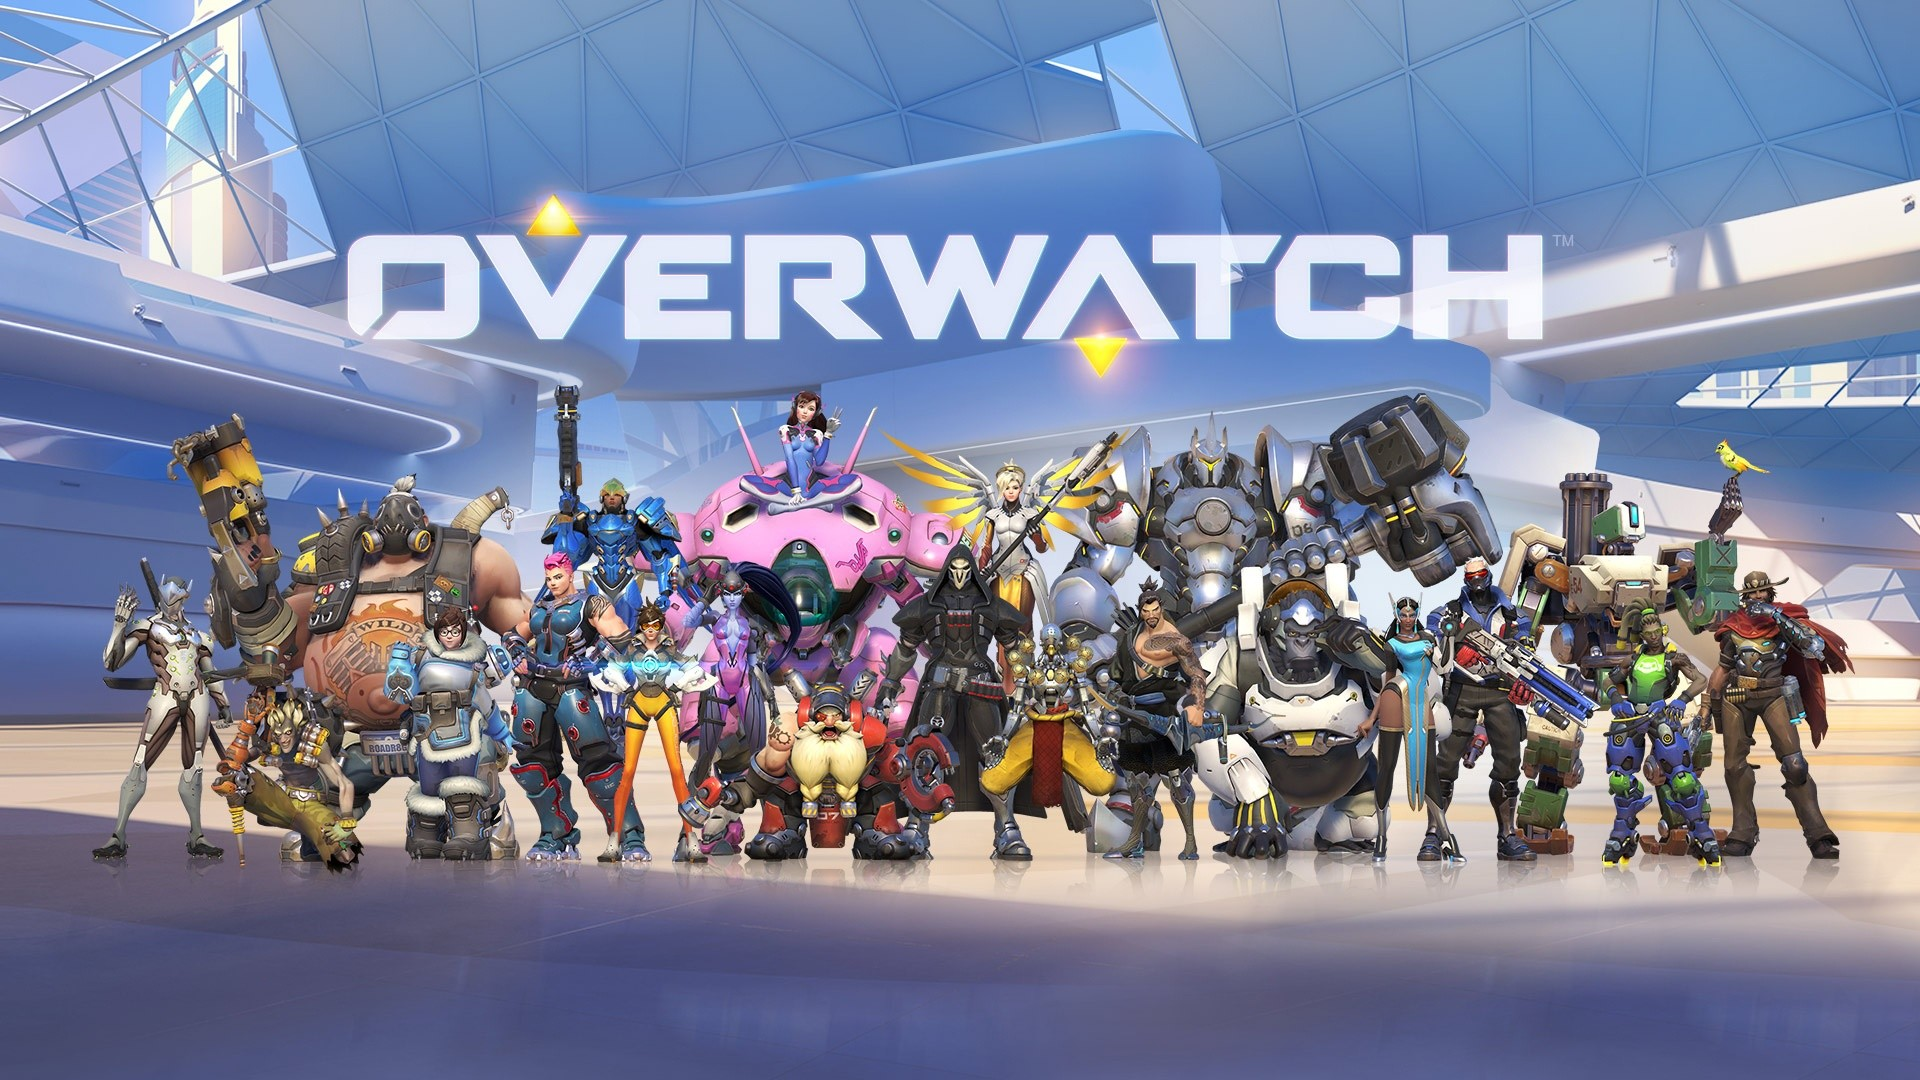 Overwatch full hd wallpaper and background 1920x1280 - 1920x1080 Overwatch Full Hd Wallpaper 1920x1080